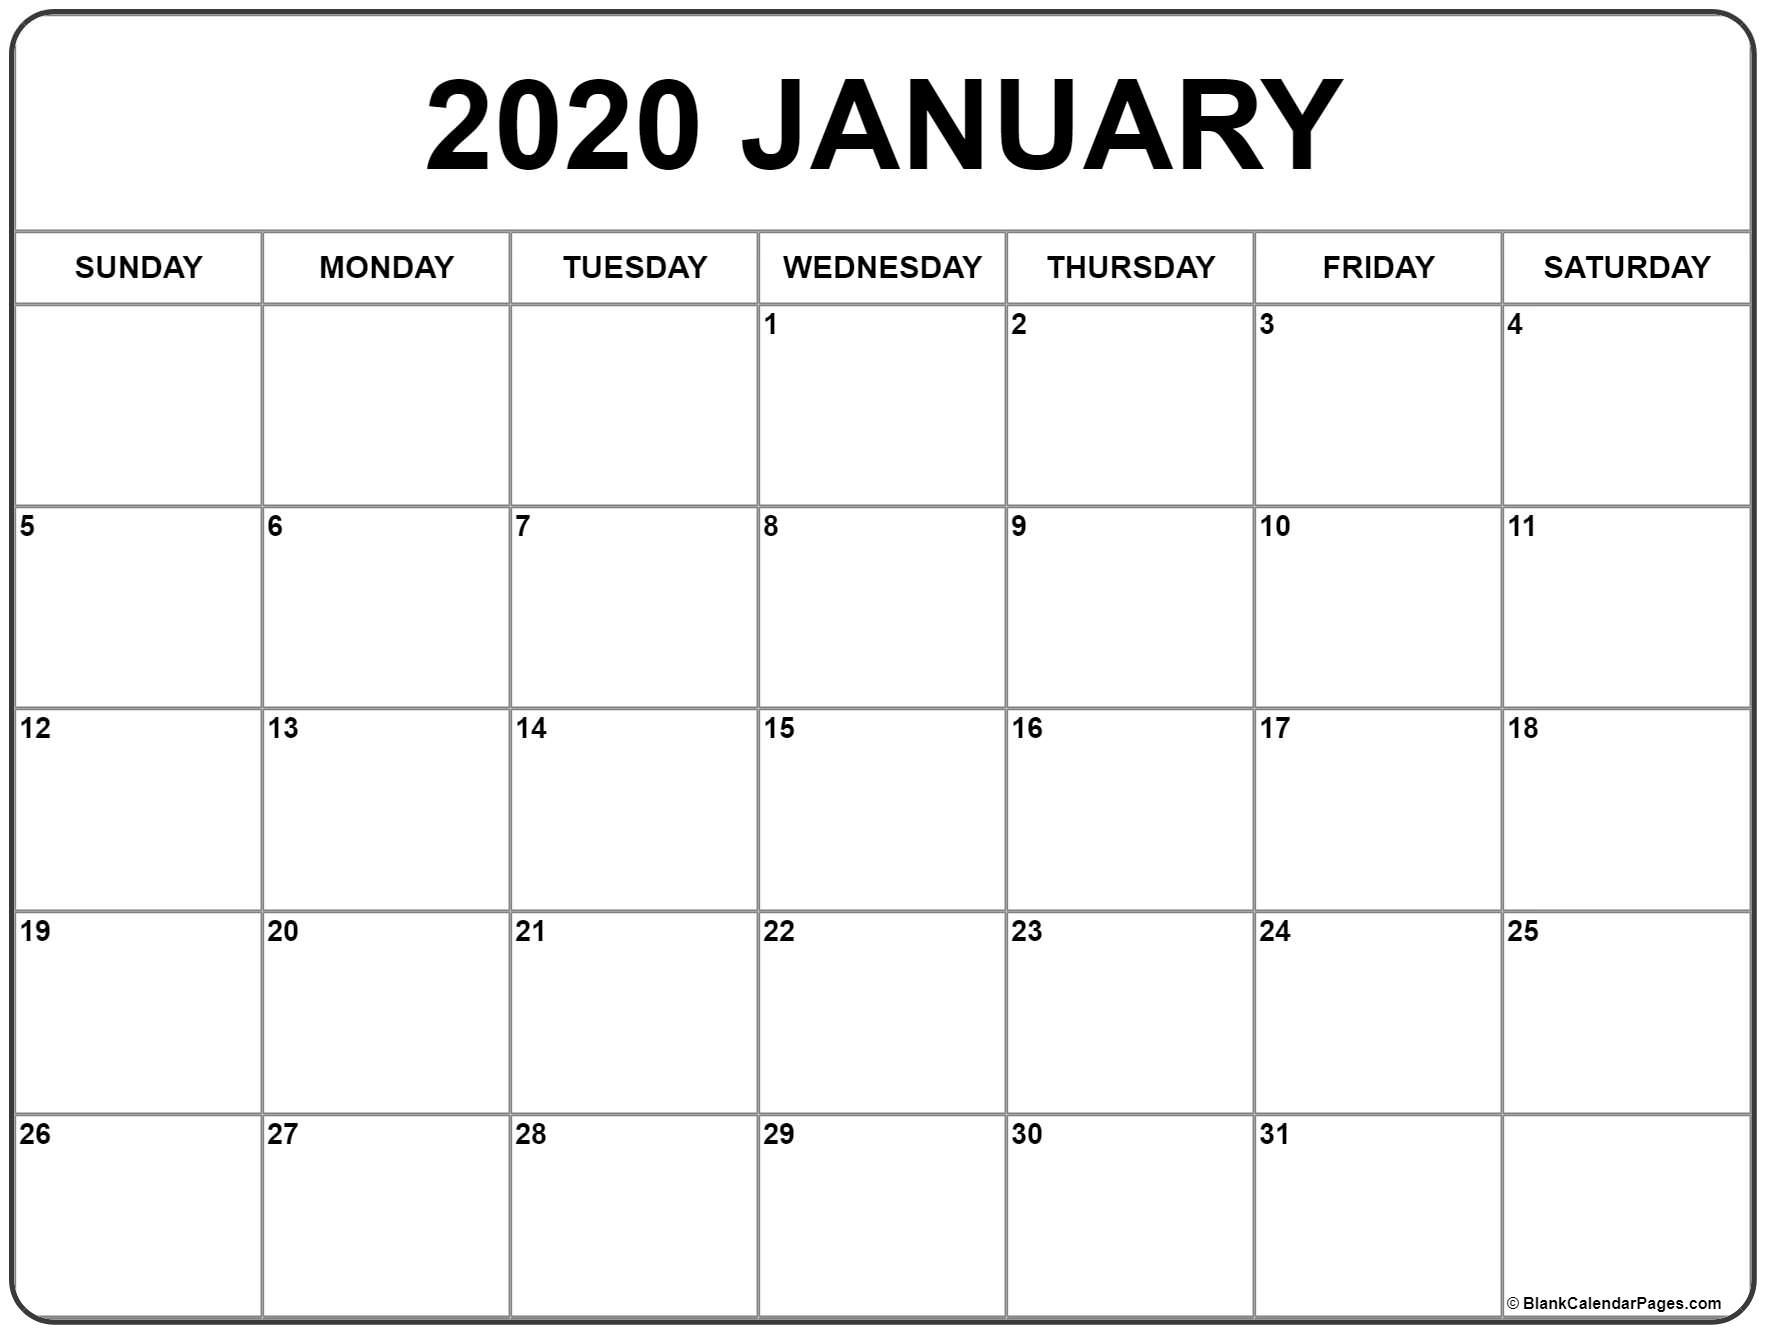 January 2020 Calendar | Free Printable Monthly Calendars with 2020 Monthly Fill In Calendars